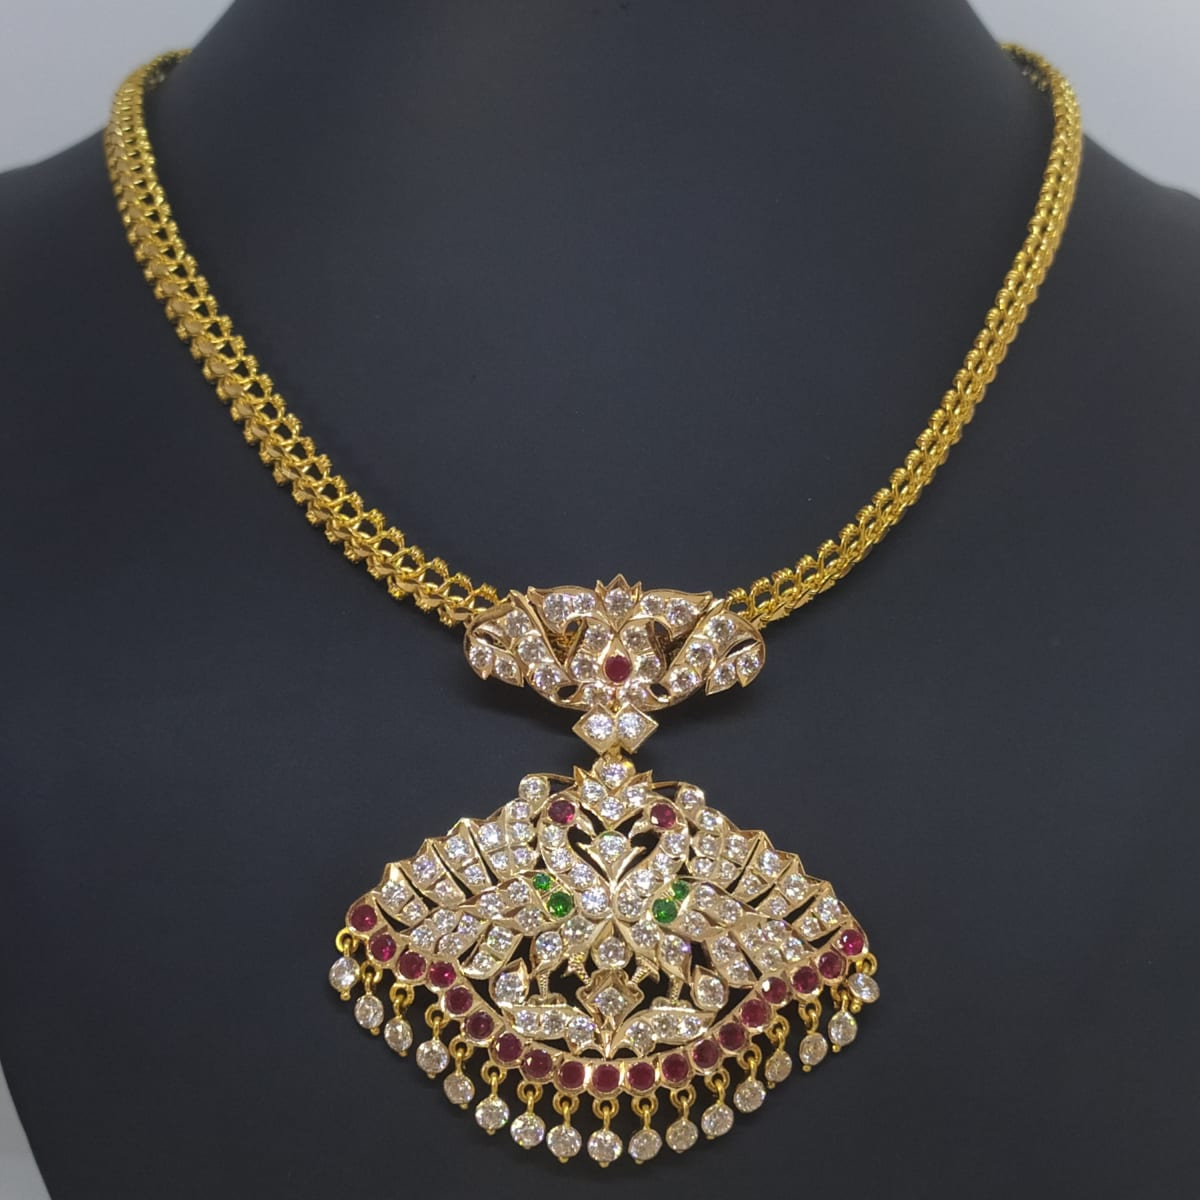 Dharitri Necklace